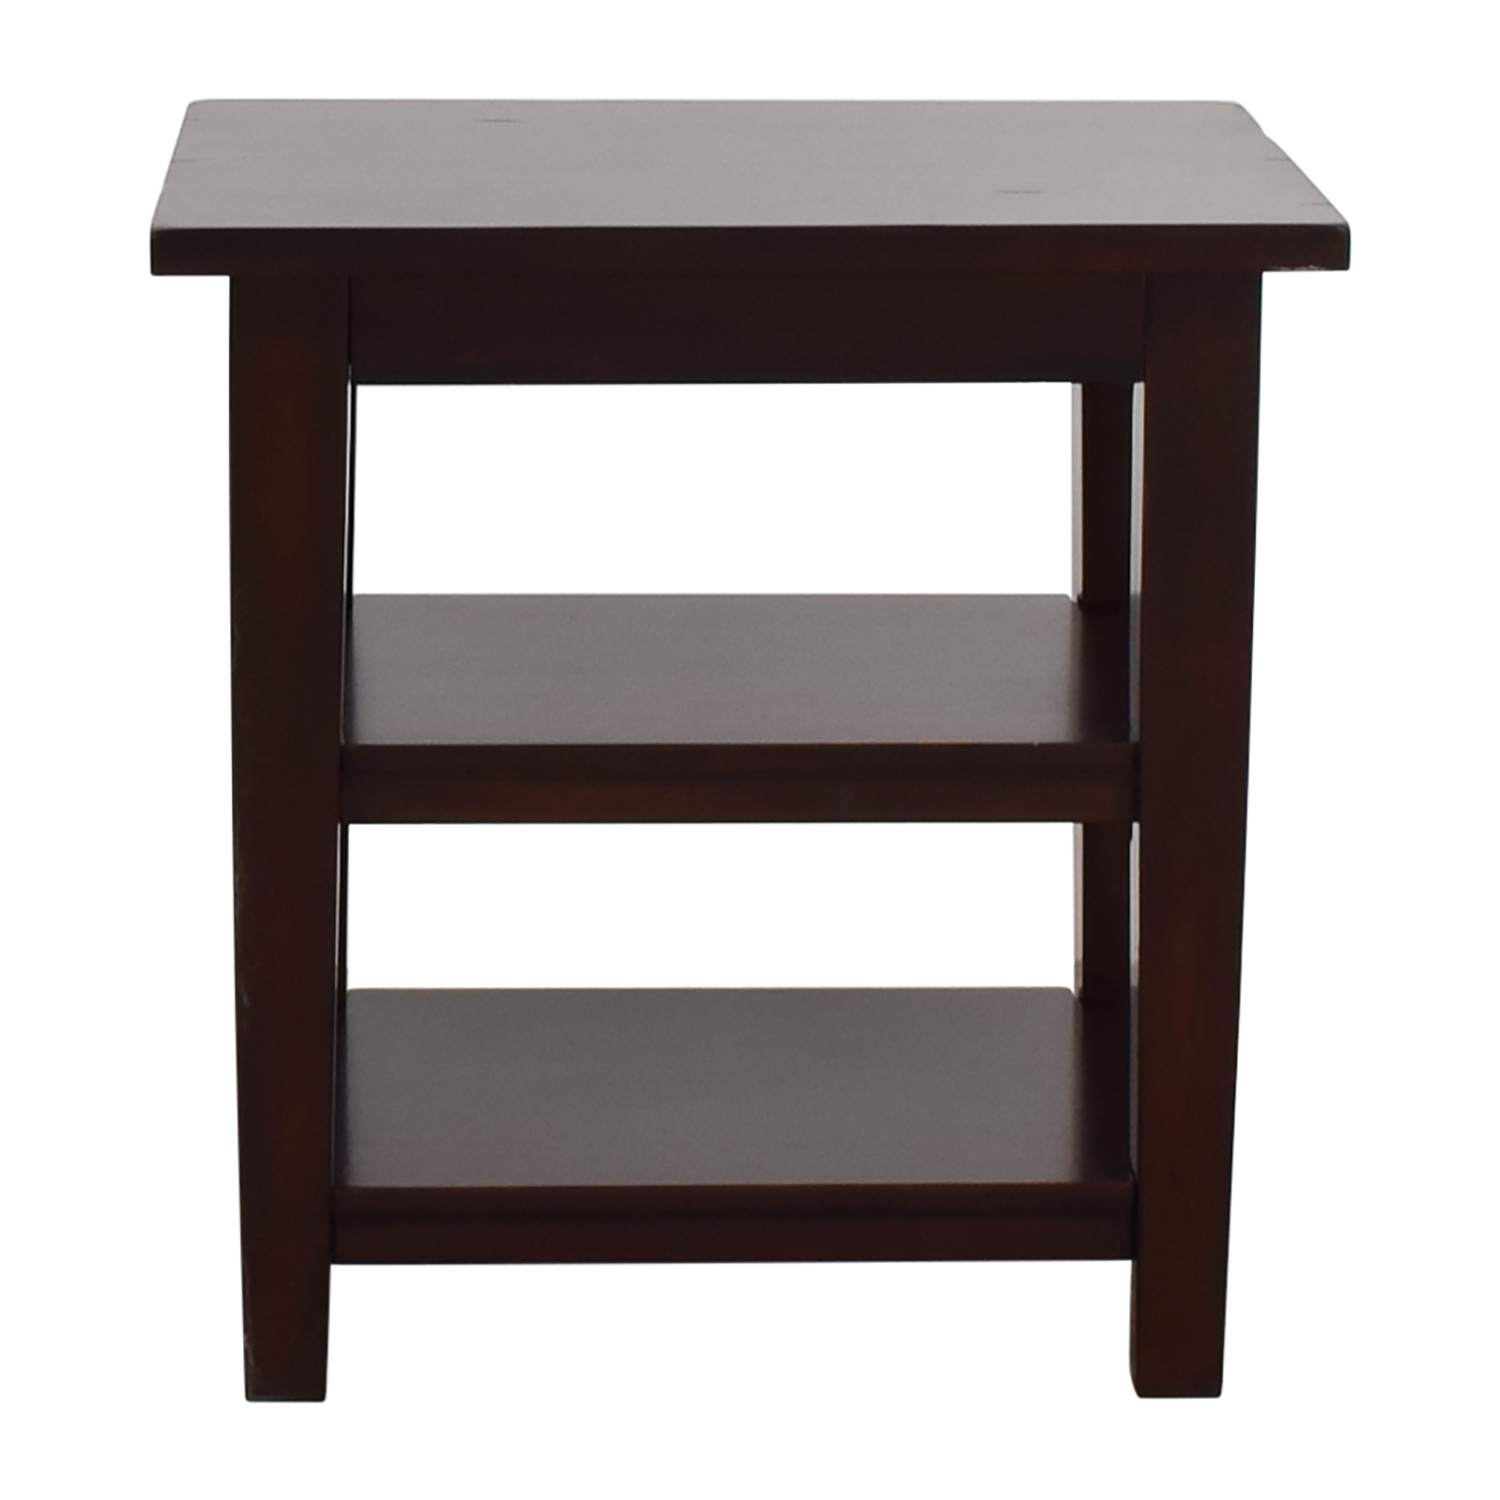 buy Pier 1 Wooden End Table Pier 1 End Tables